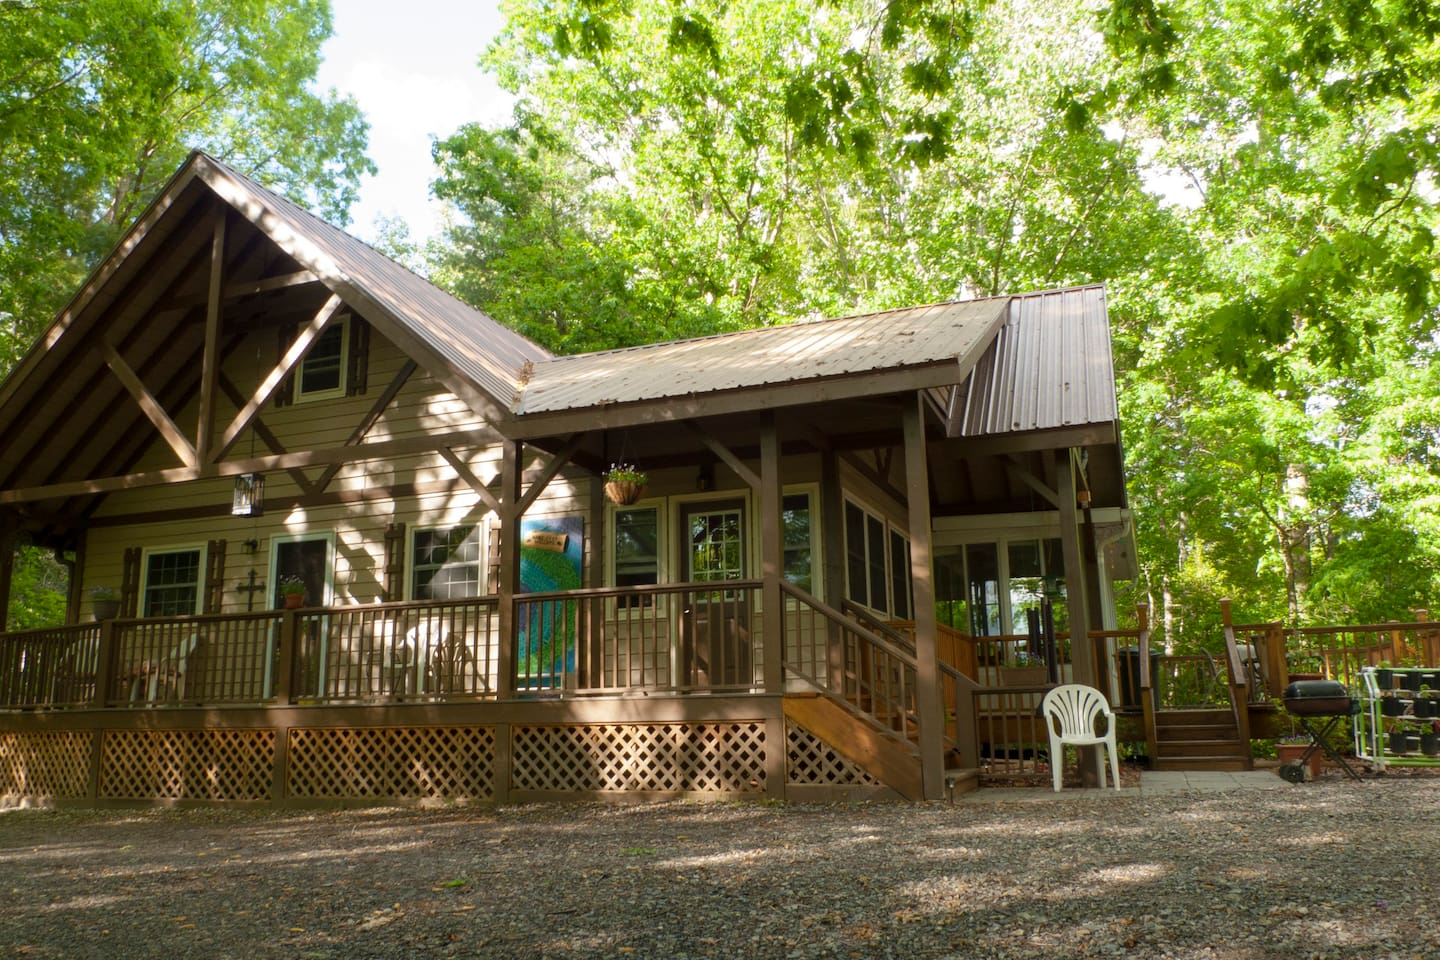 The guest entrance is the door to the left.  There is a covered front porch and a deck overlooking a firepit.